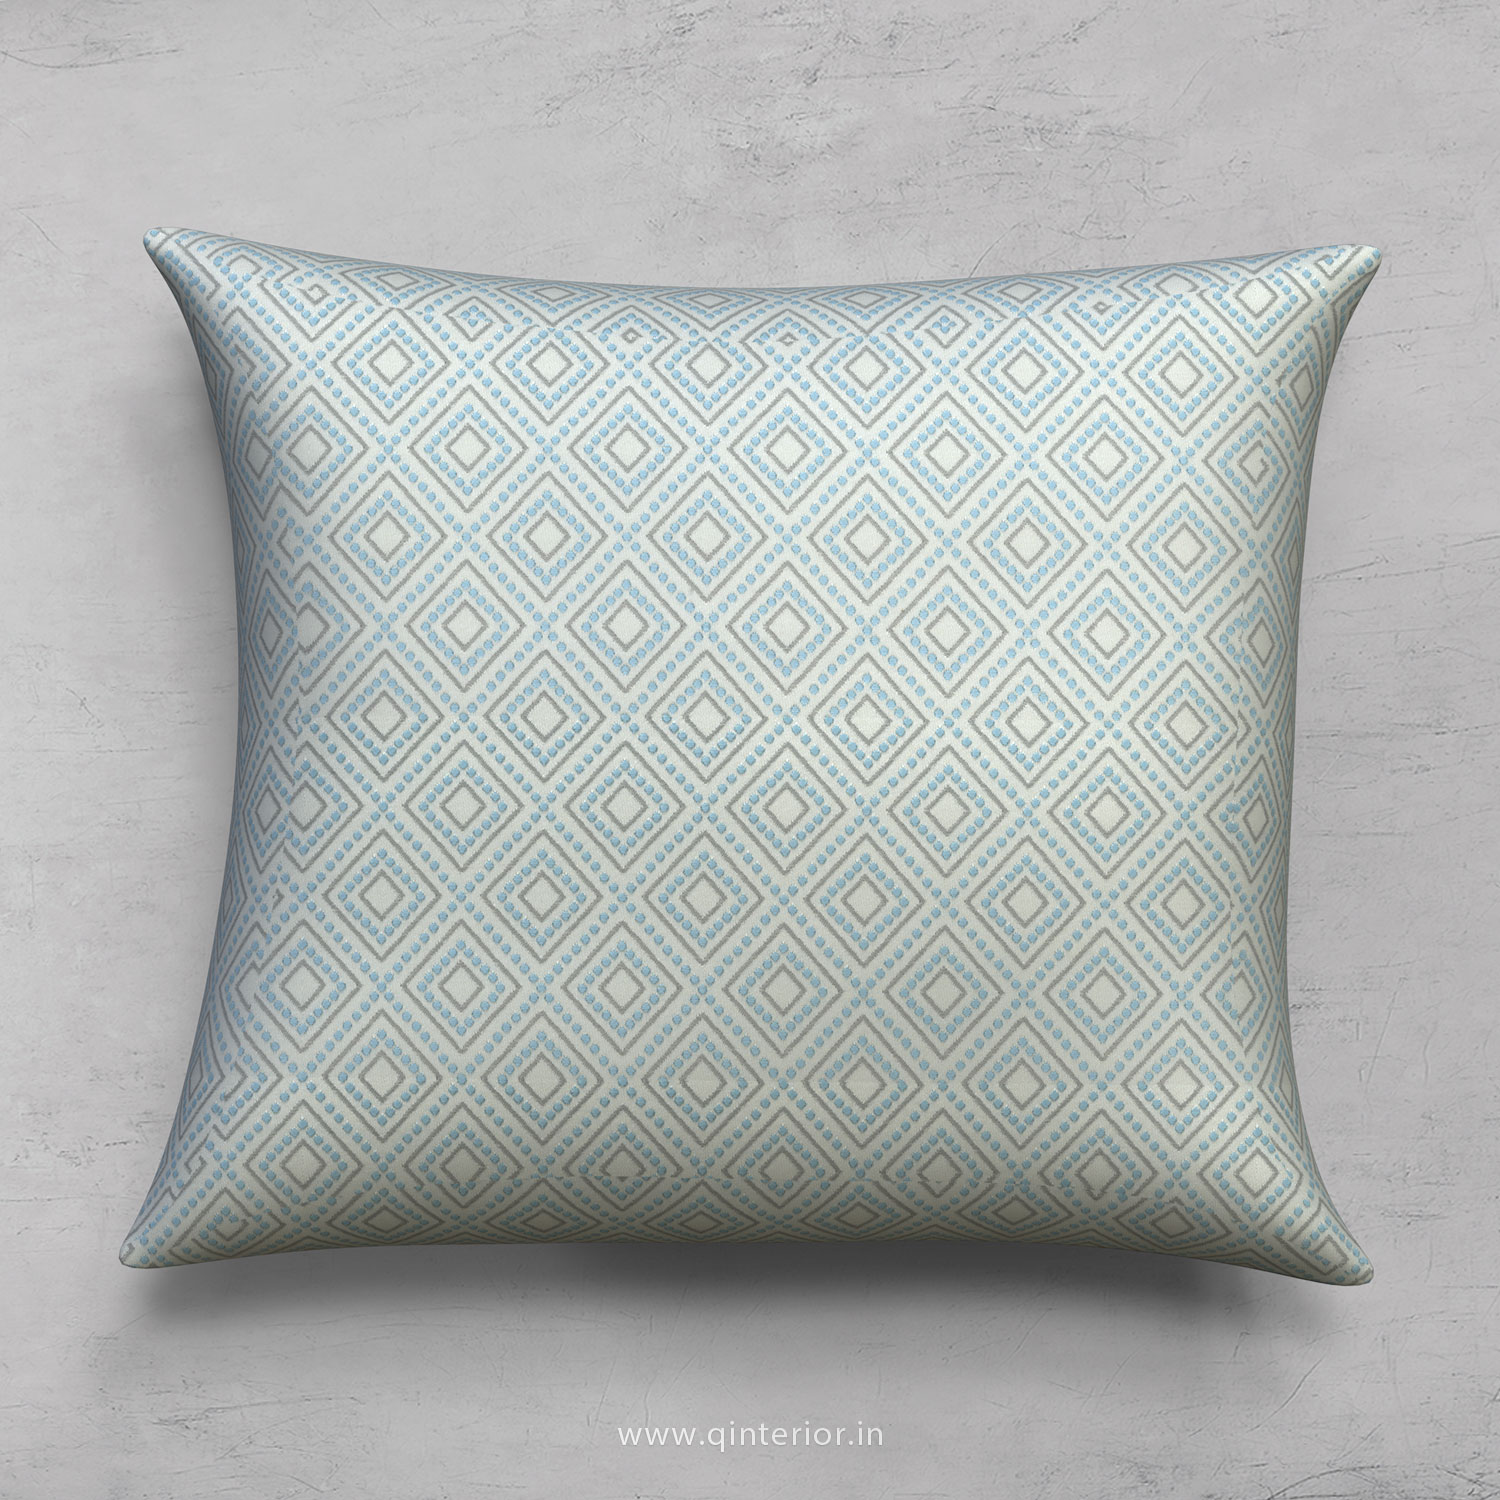 Cushion With Cushion Cover in Jacquard- CUS001 JQ27